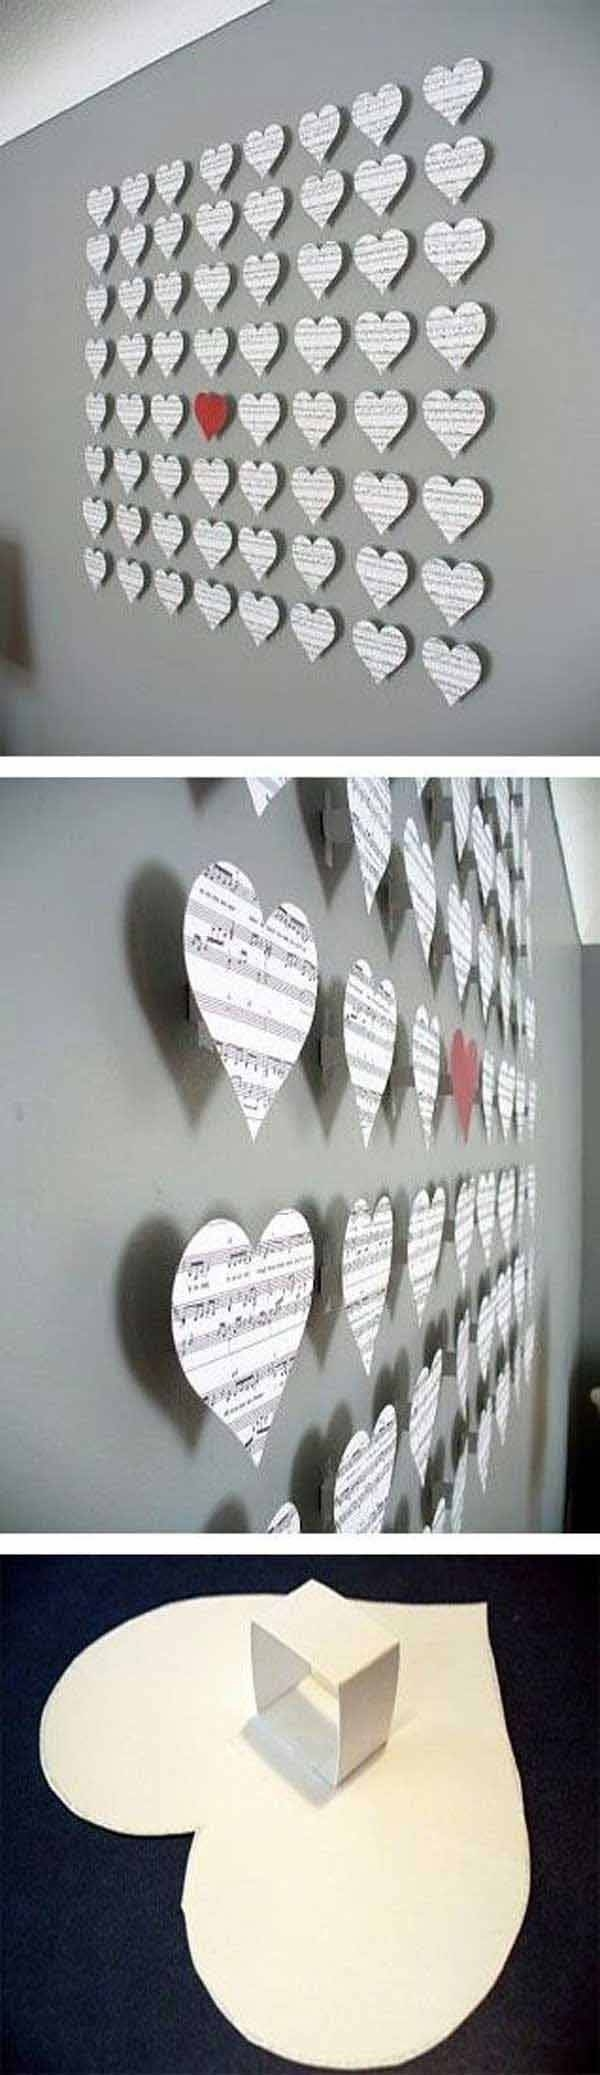 25+ Unique Cheap Wall Decor Ideas On Pinterest | Easy Wall Decor Pertaining To Most Recently Released Cheap Wall Art And Decor (View 1 of 20)